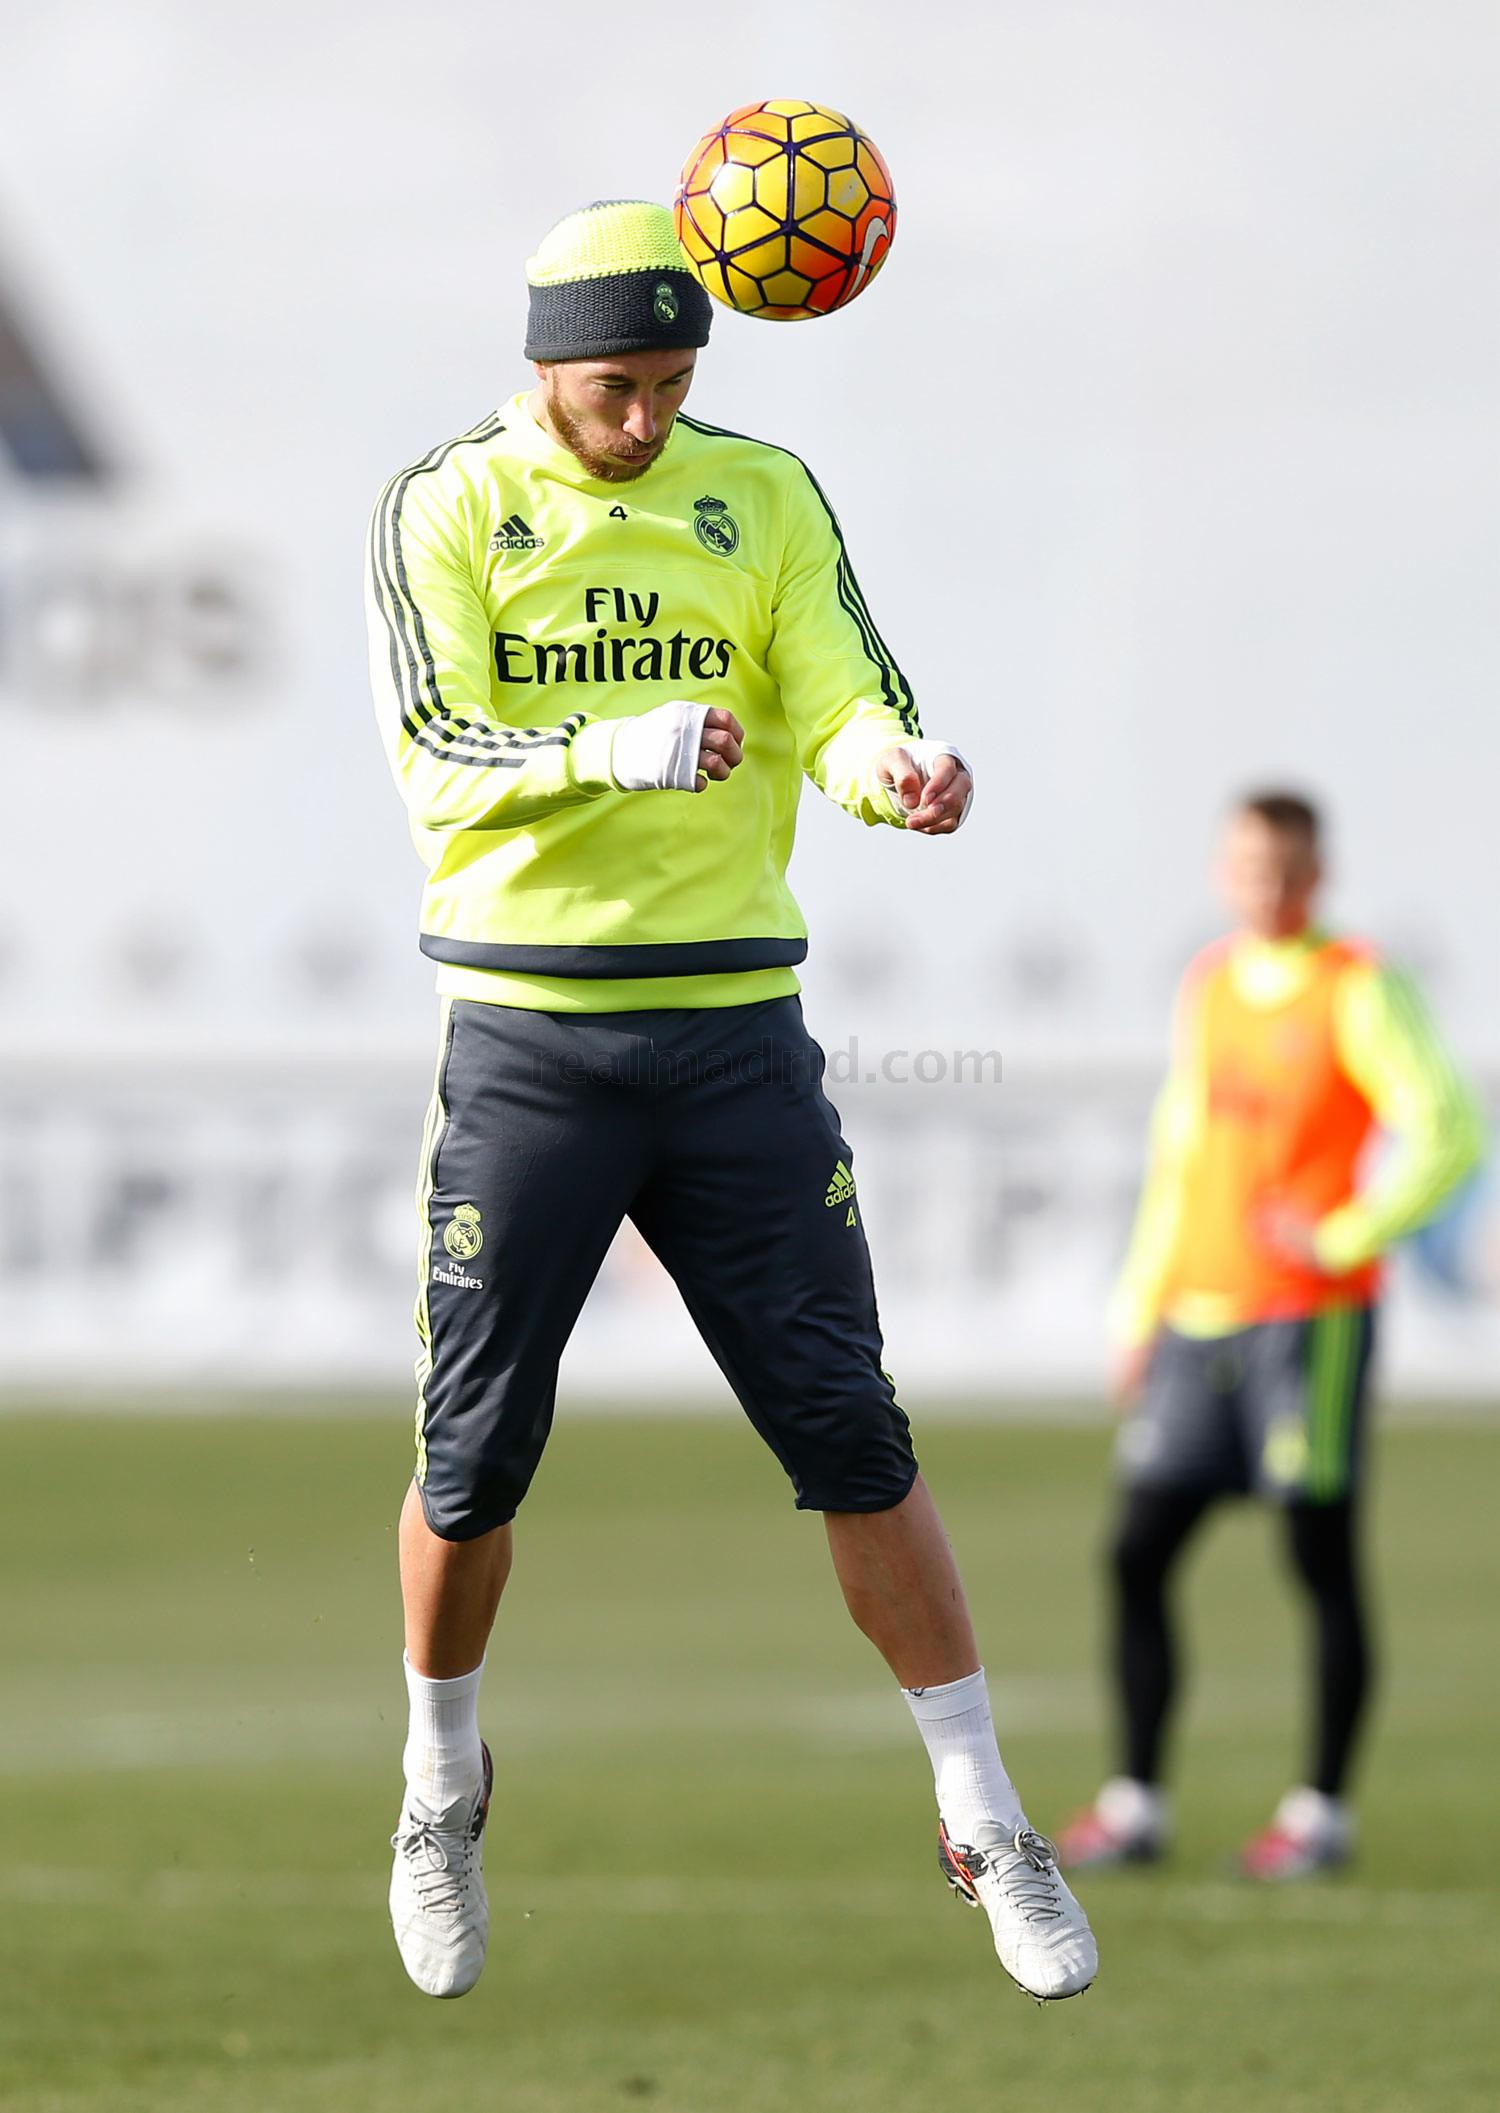 Real Madrid - Entrenamiento del Real Madrid - 23-01-2016